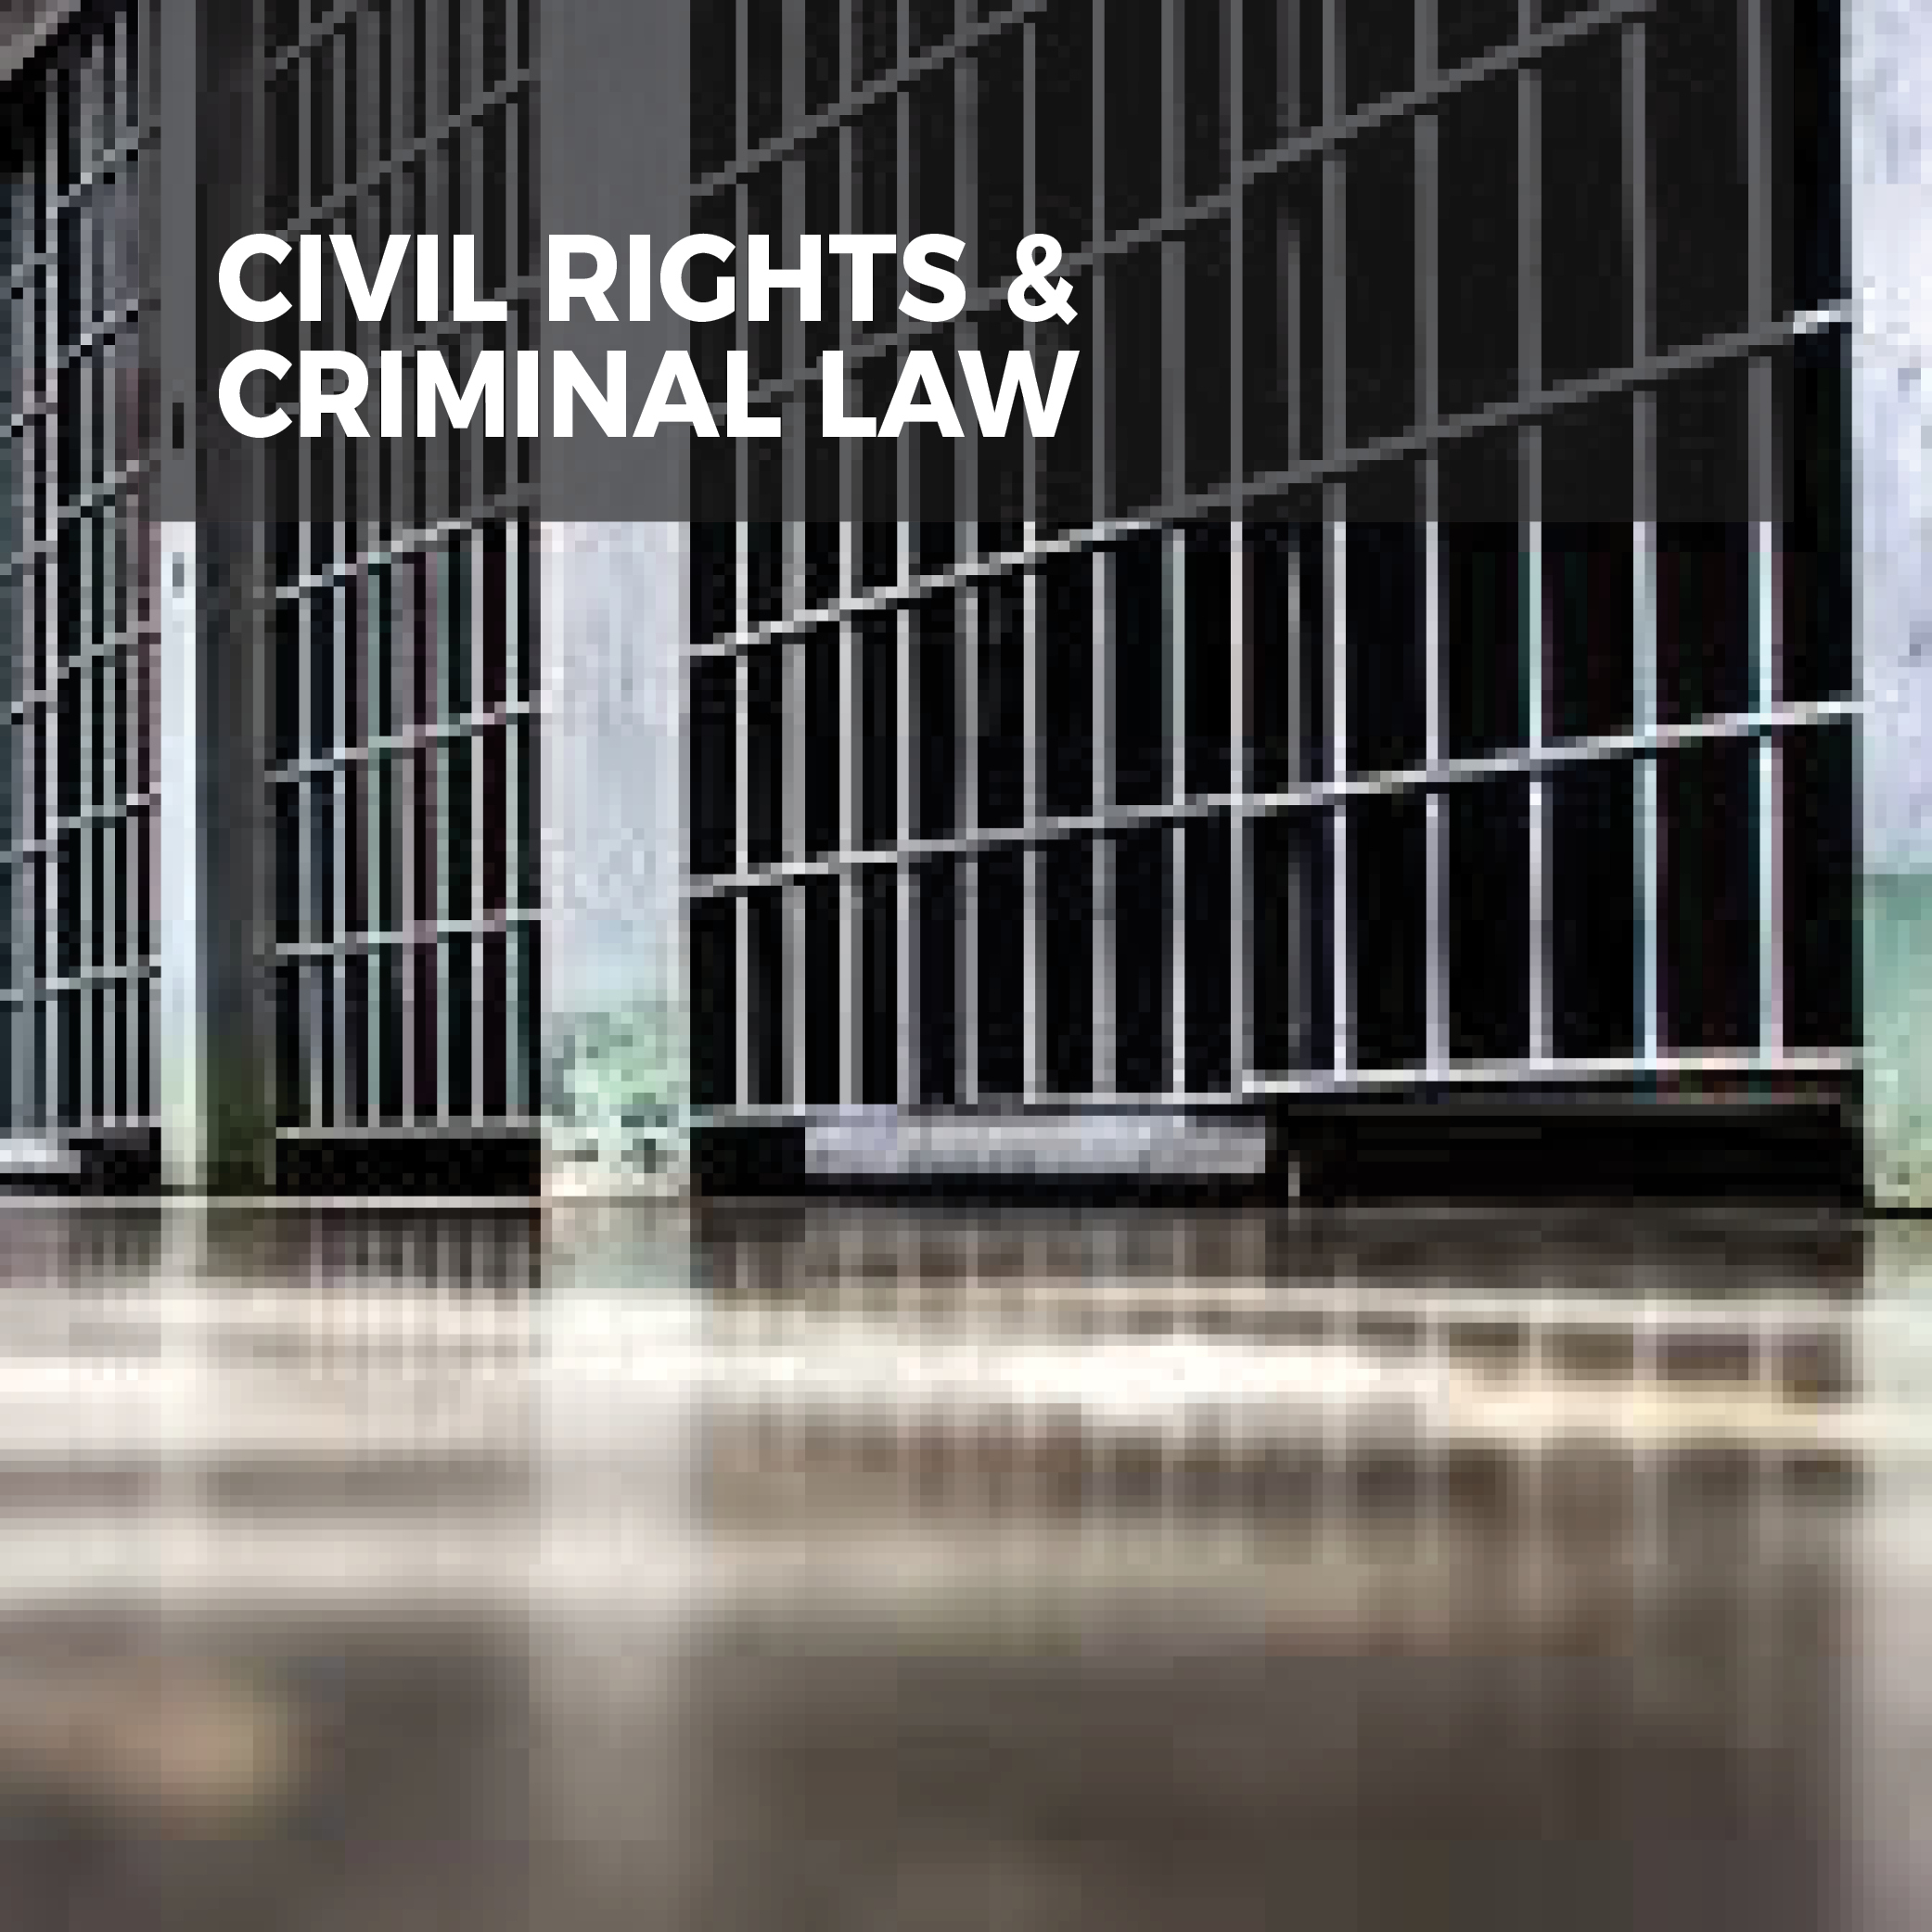 Civil Rights & Criminal Law